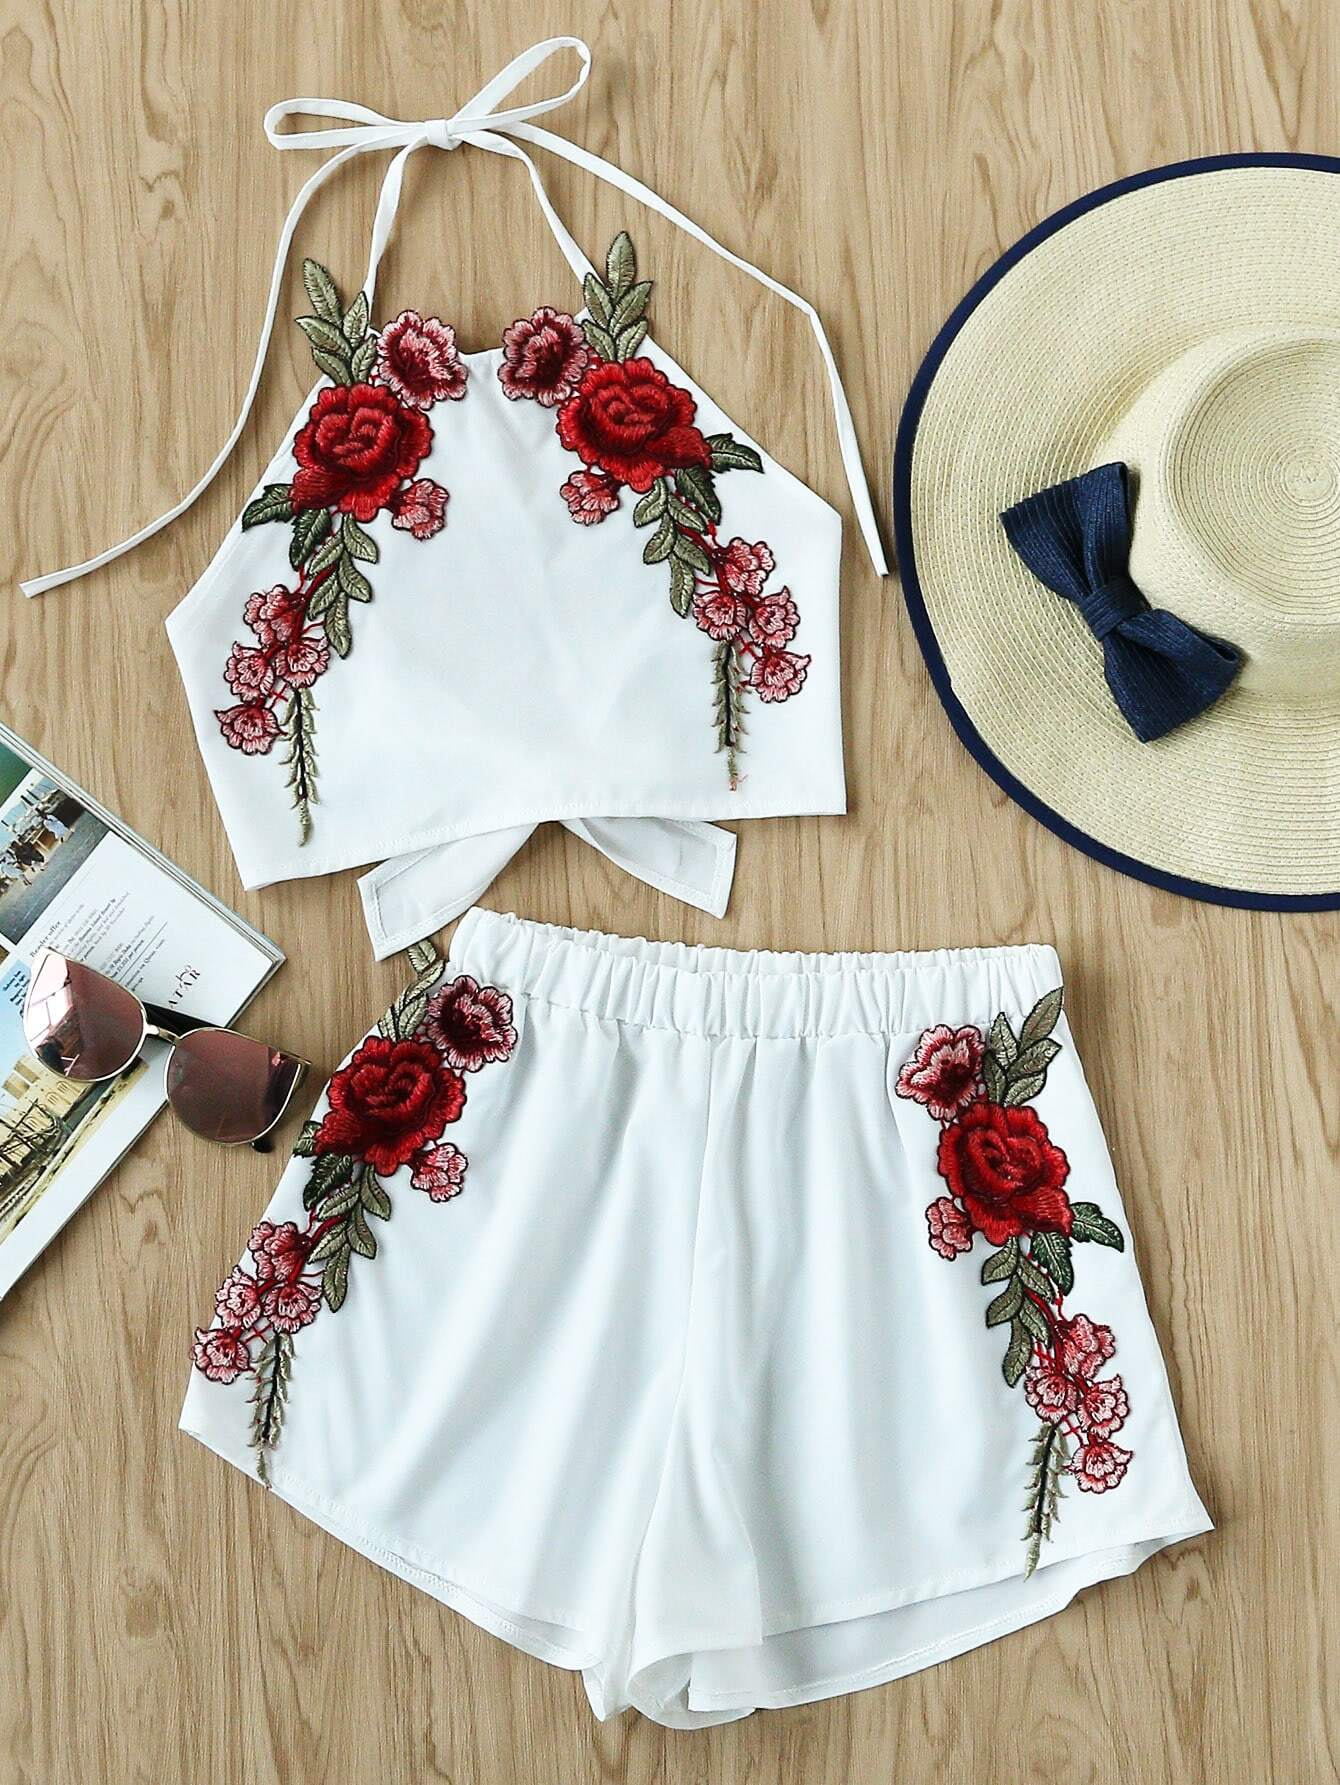 Rose Applique Bow Tie Open Back Top And Shorts Set small rose tie